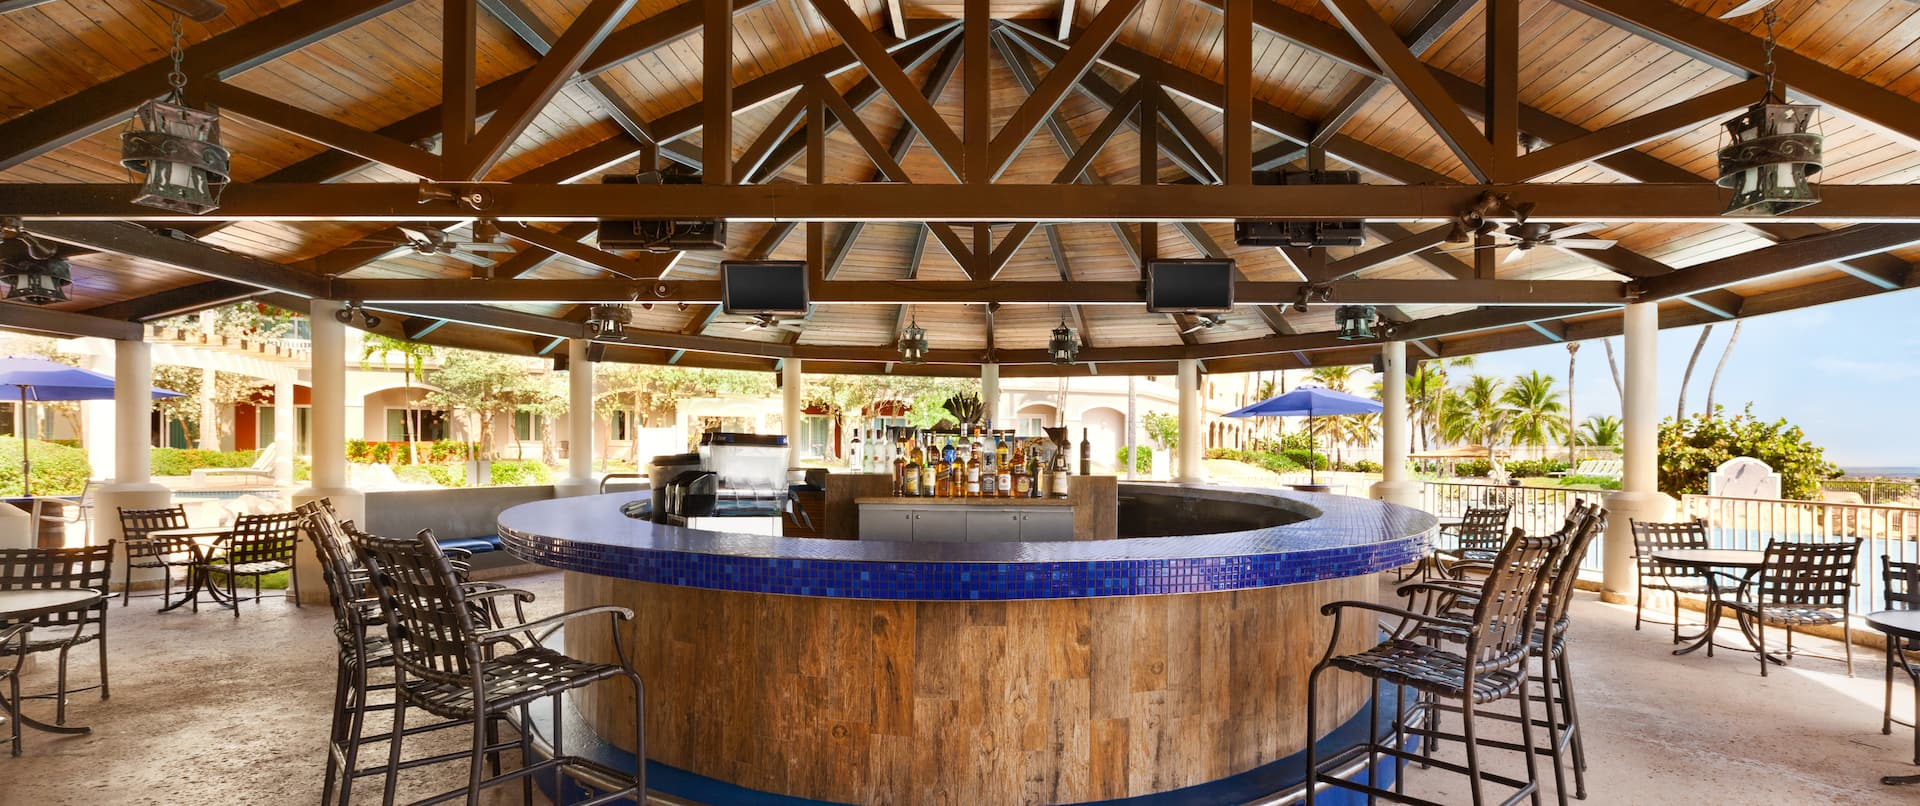 Outdoor Pool Bar Area with Bar Counter and Bar Stools